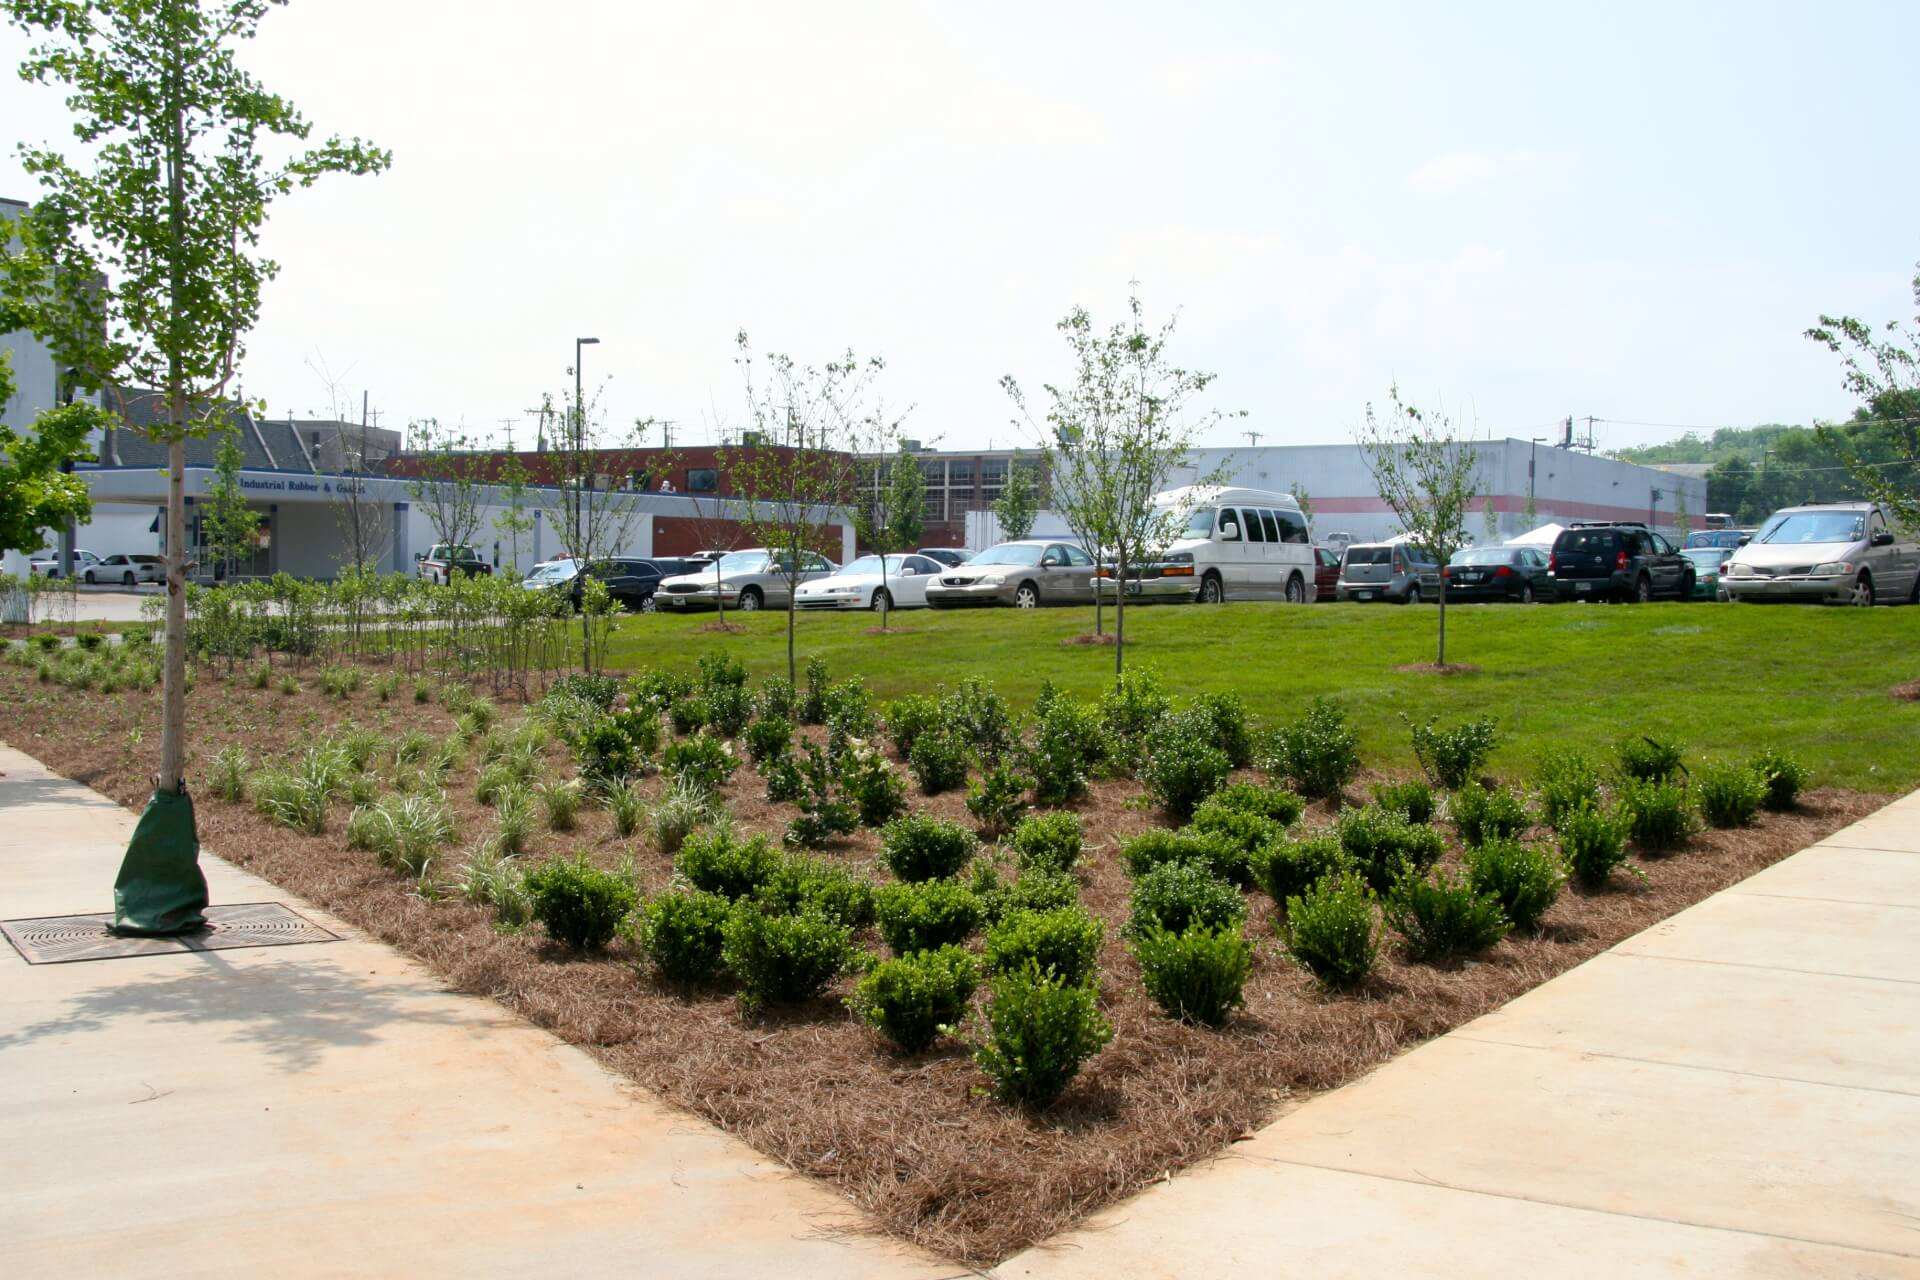 Nashville Rescue Mission with new landscaping and trees